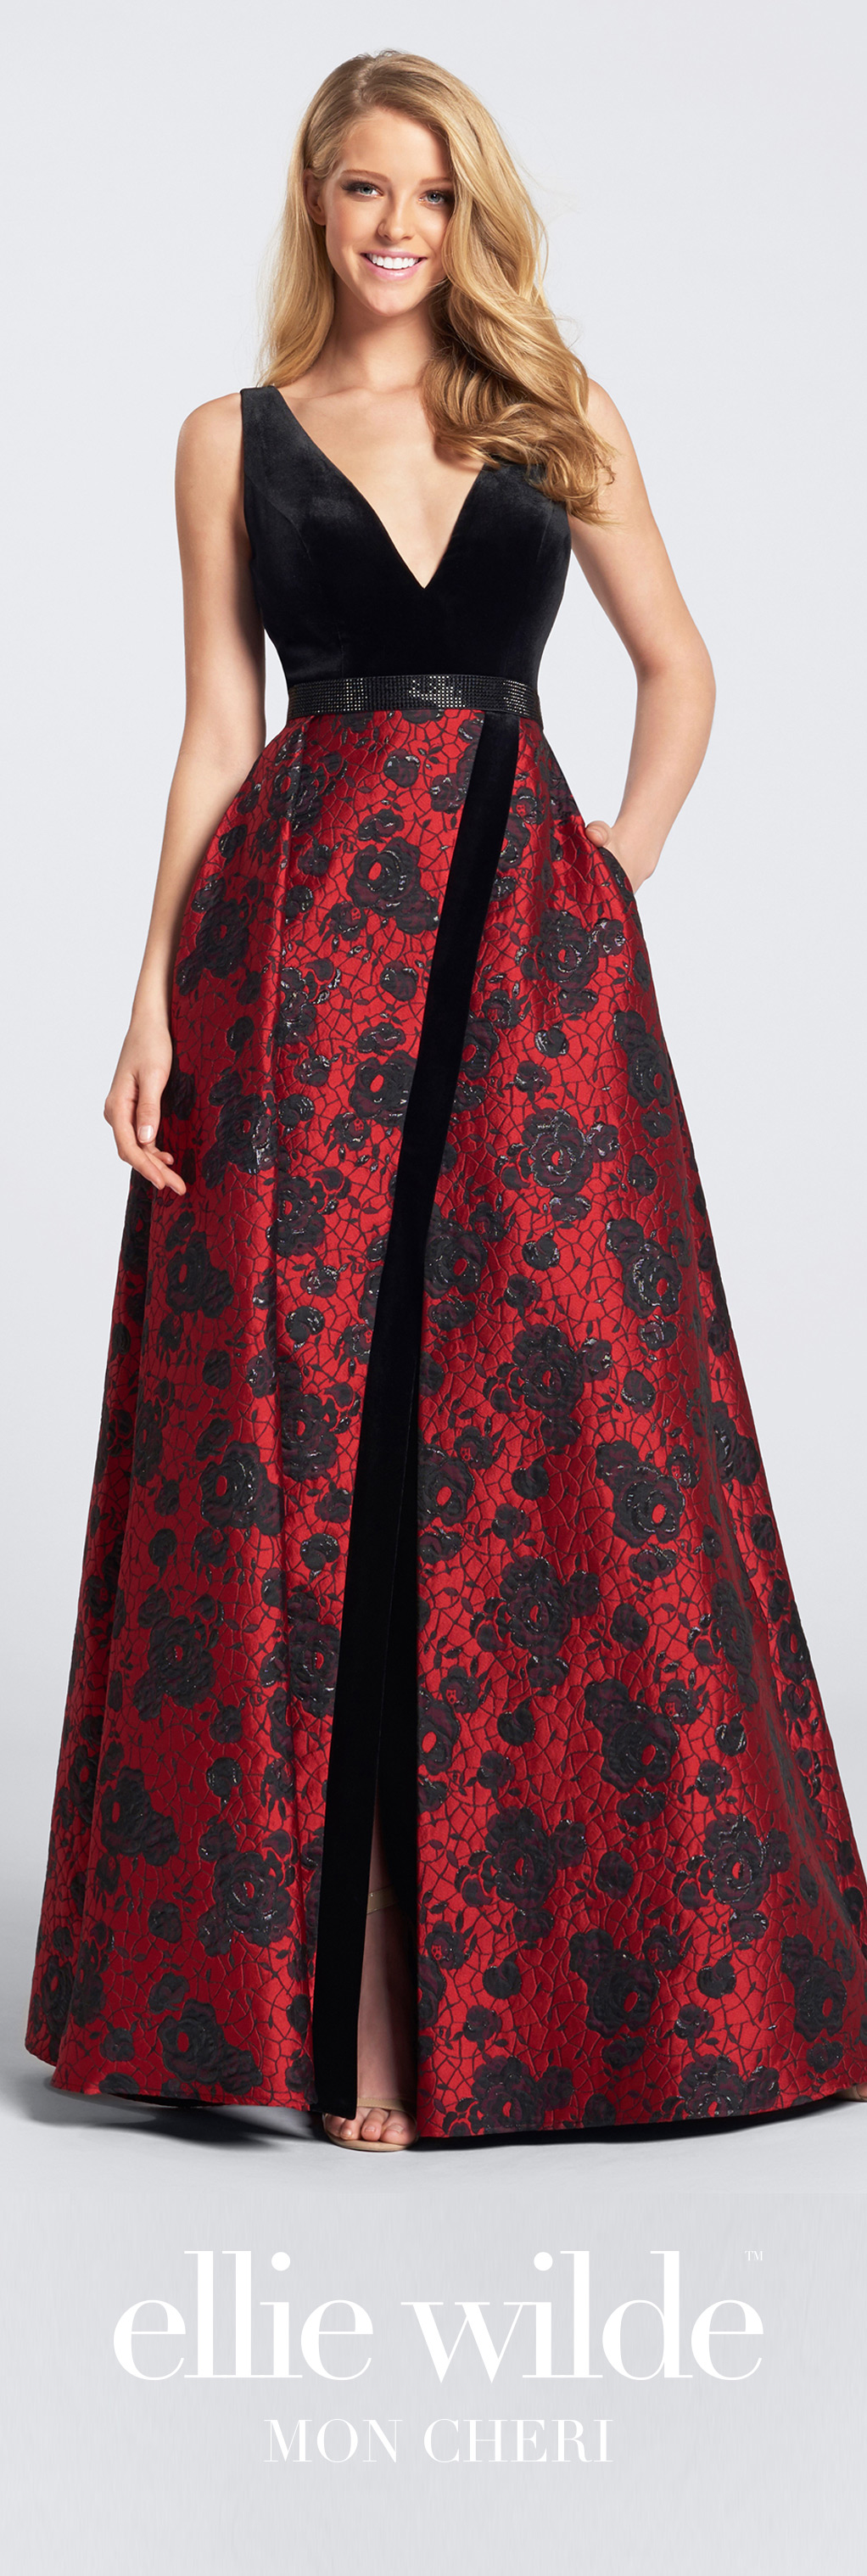 dd8e38c28190 Ellie Wilde - Fall 2017 - Style No. EW21721 - black and red sleeveless  velvet and jacquard full A-line evening gown